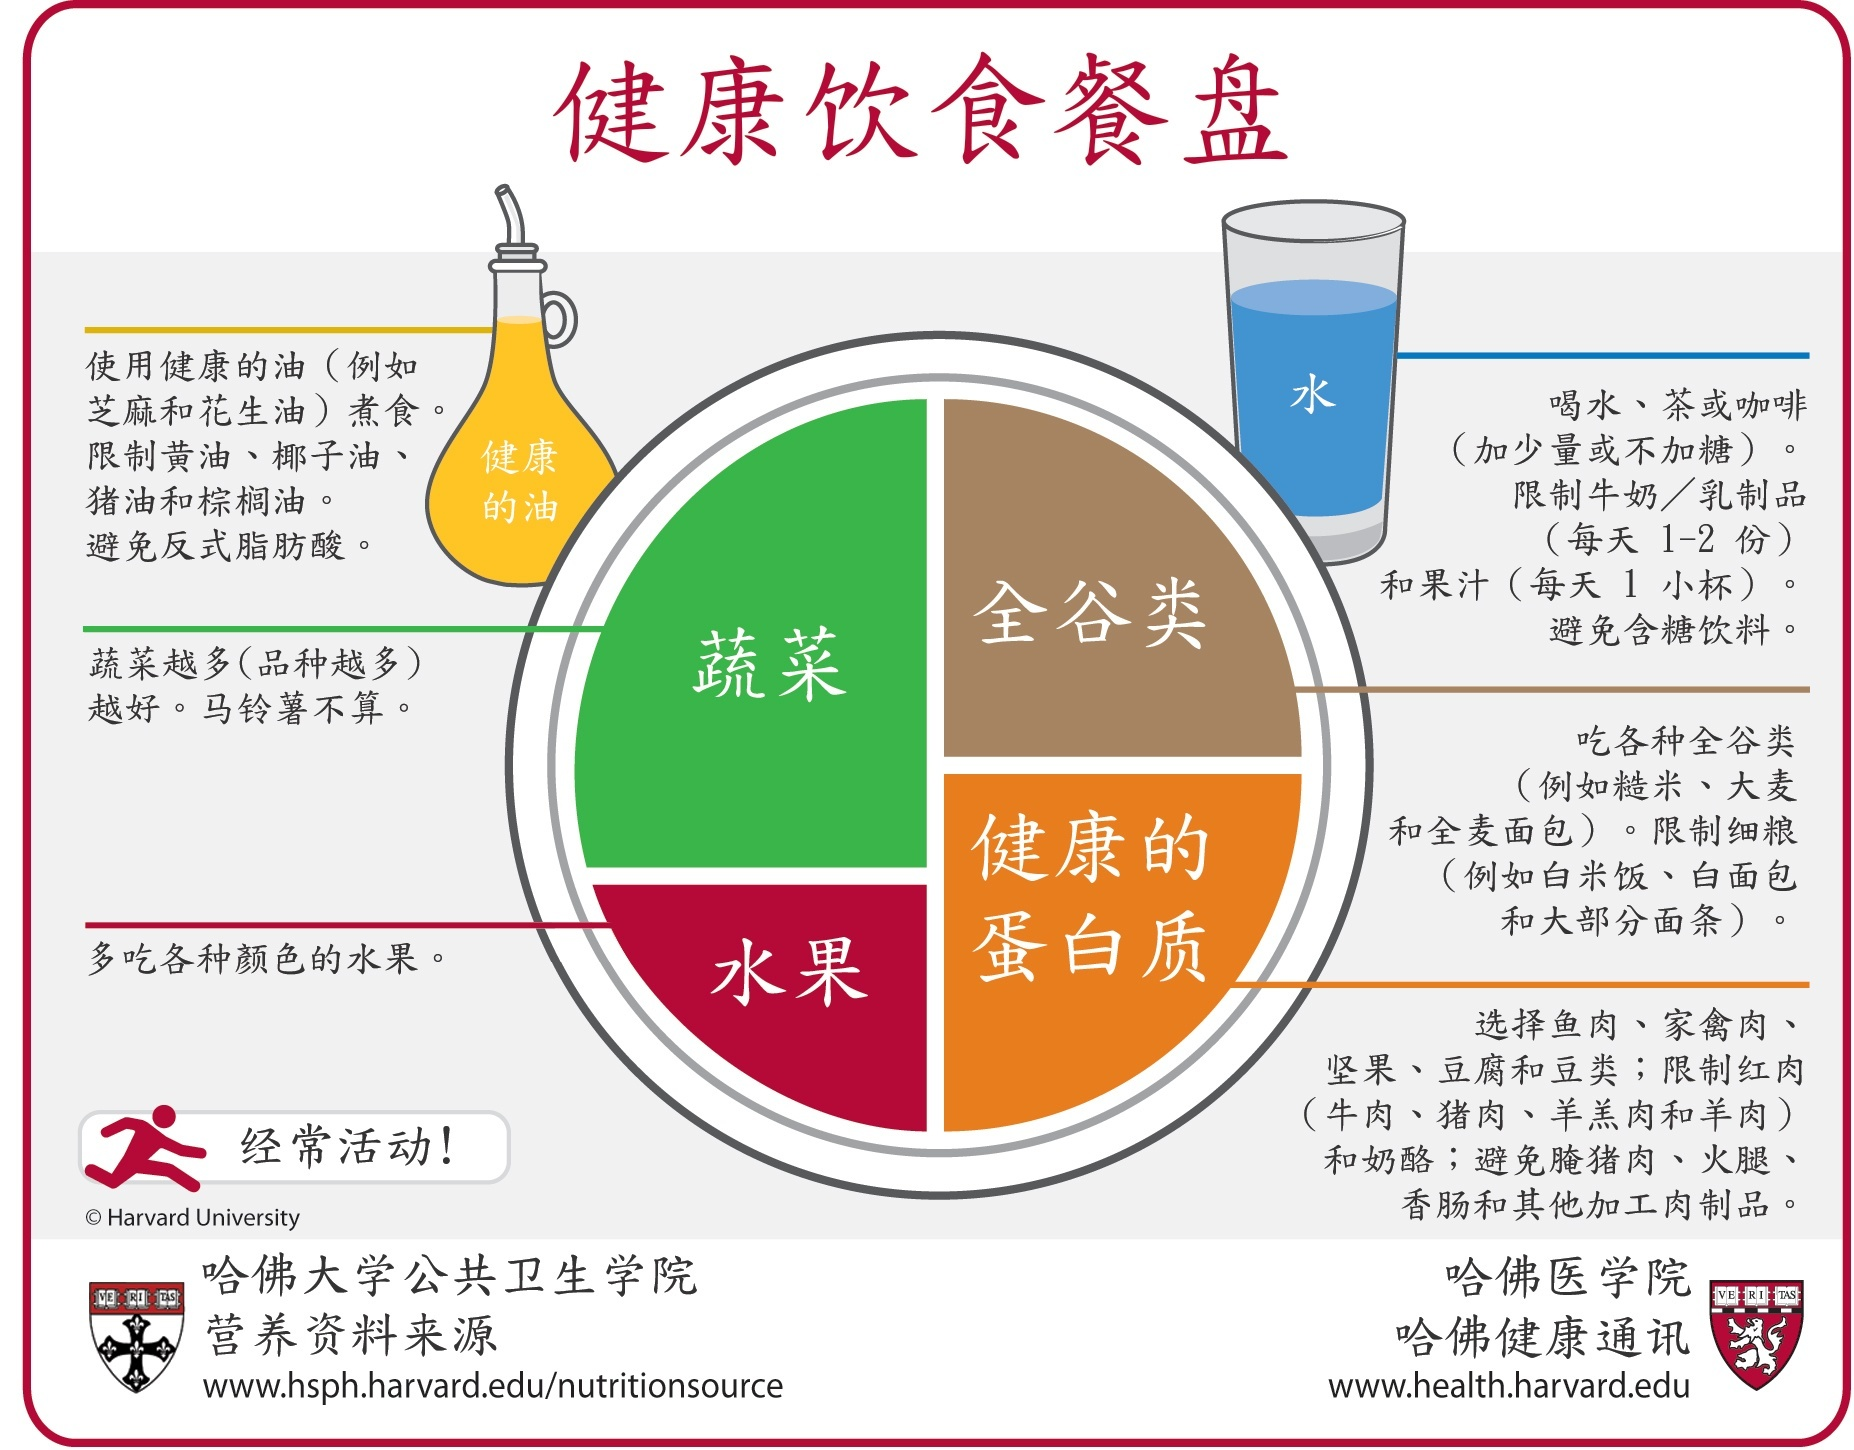 健康饮食餐盘 Chinese Simplified The Nutrition Source